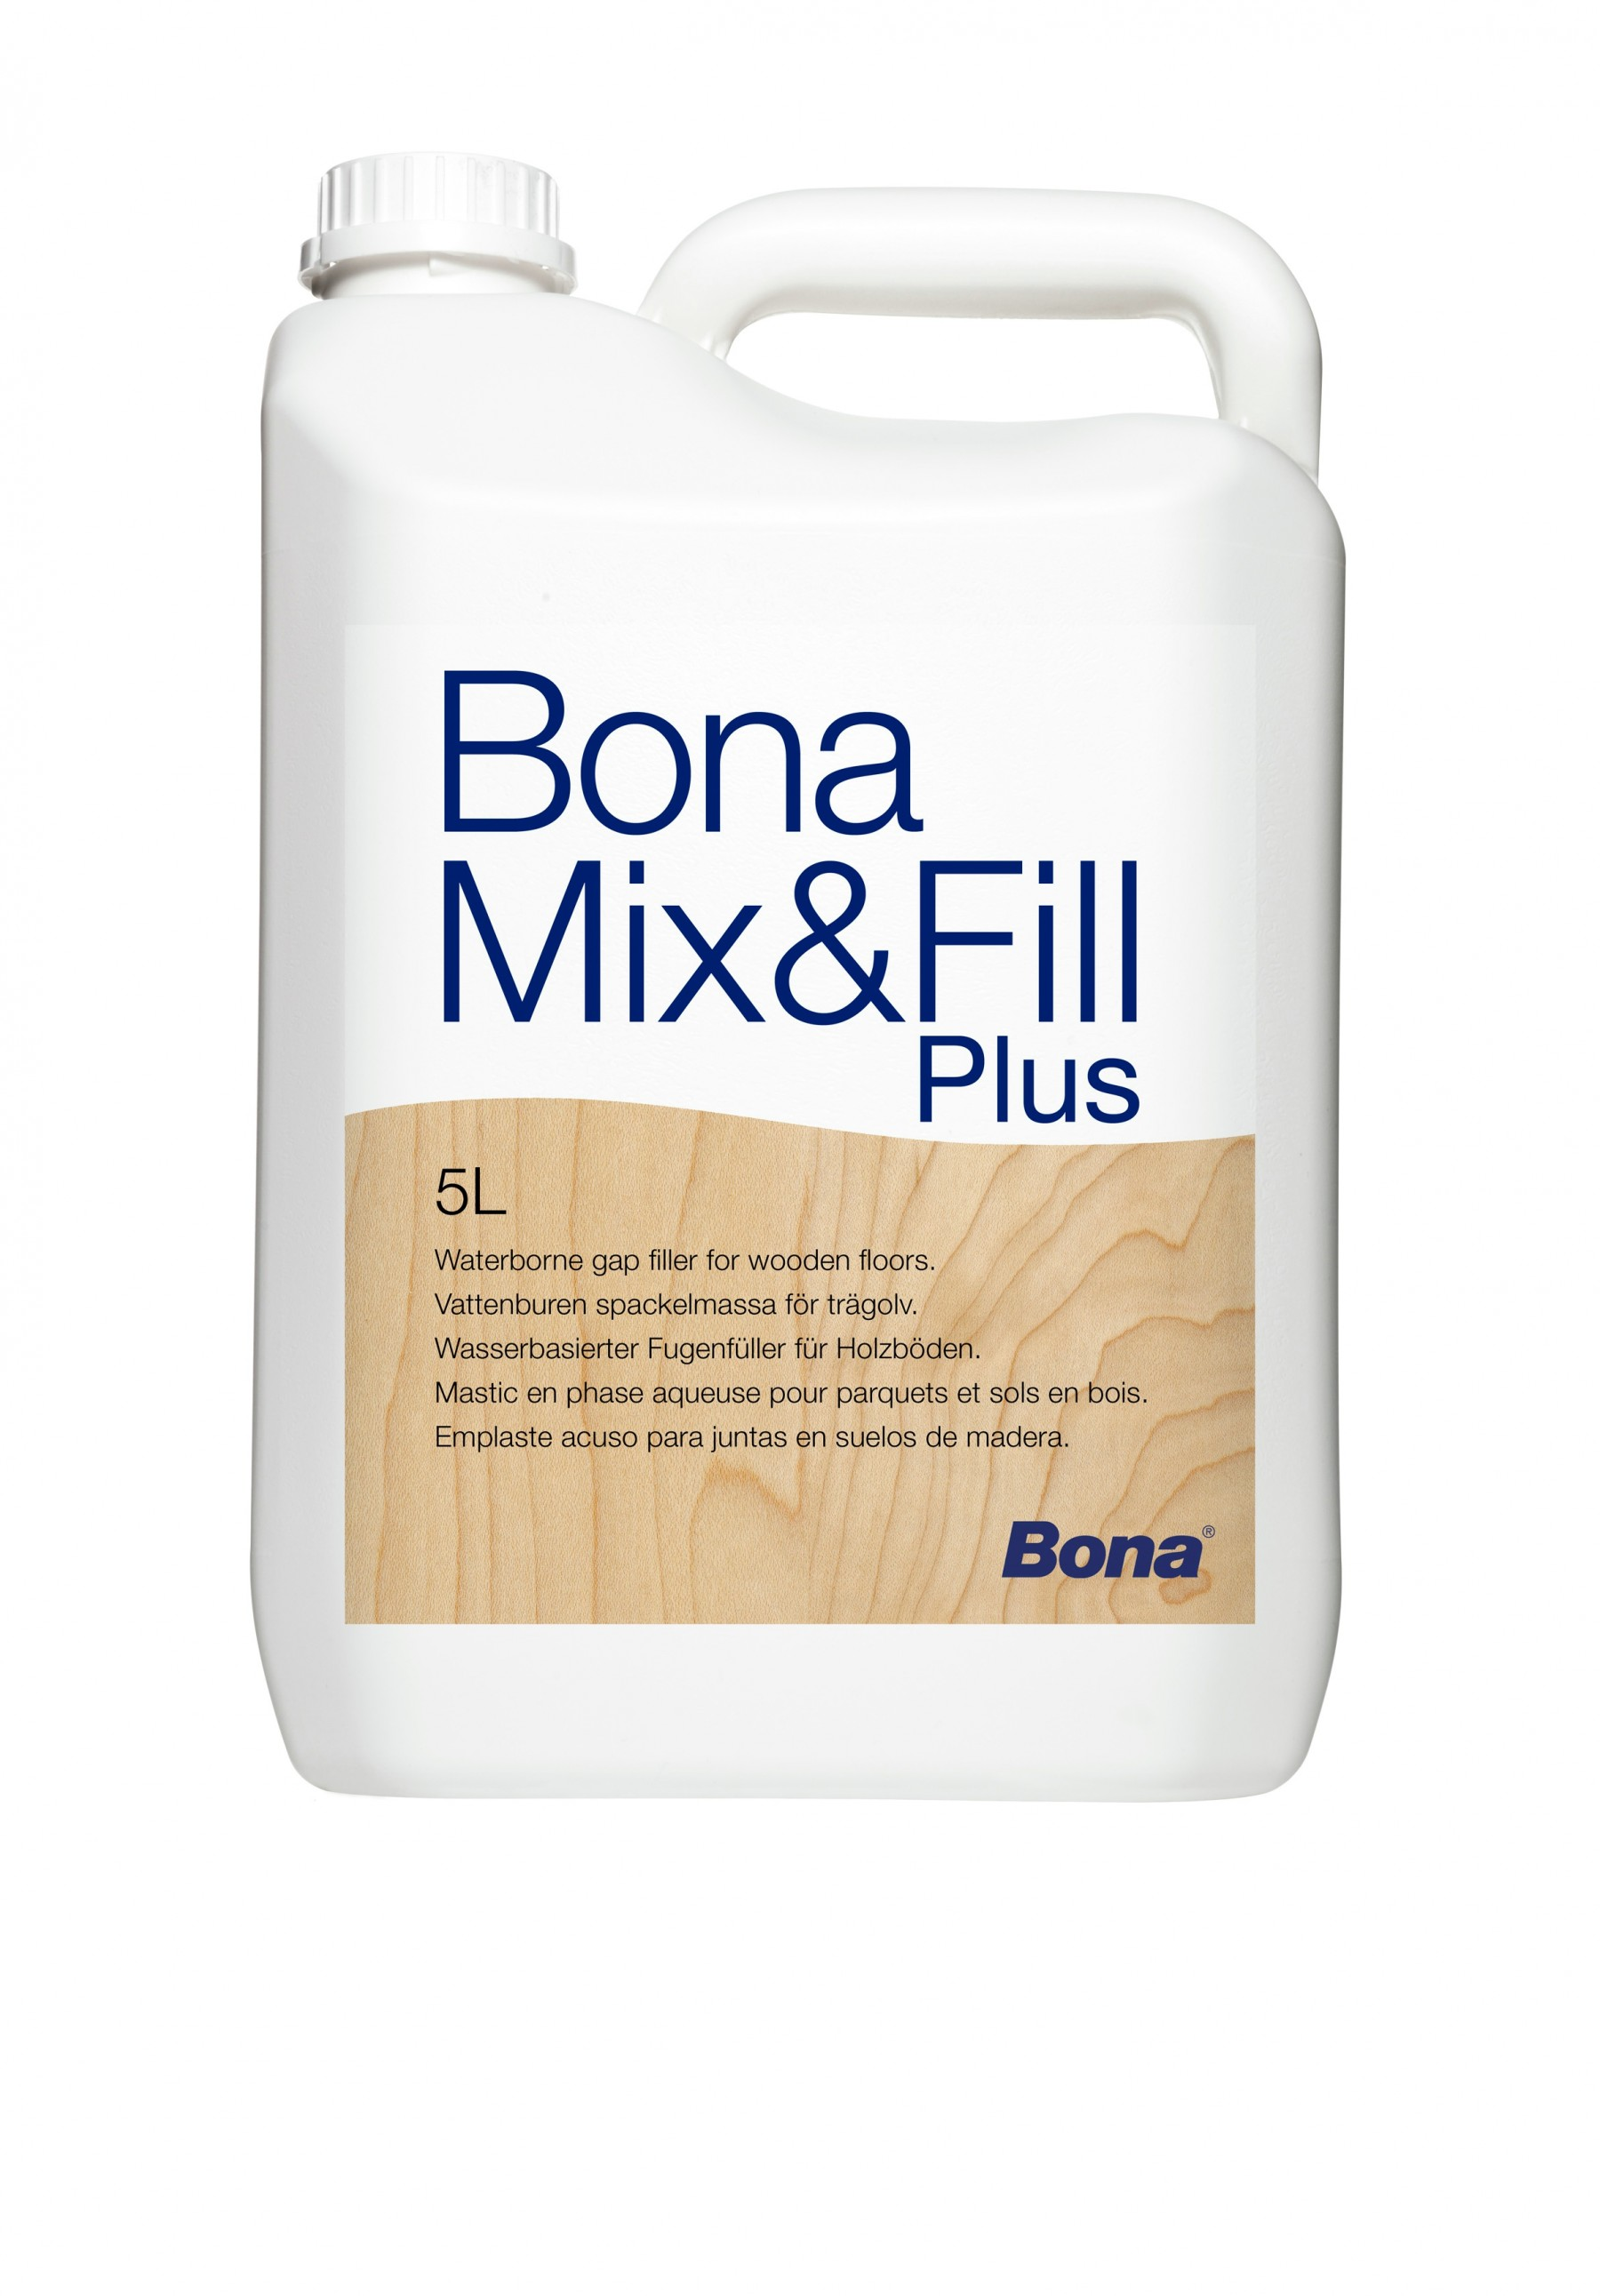 Bona Mix & Fill Plus 5L